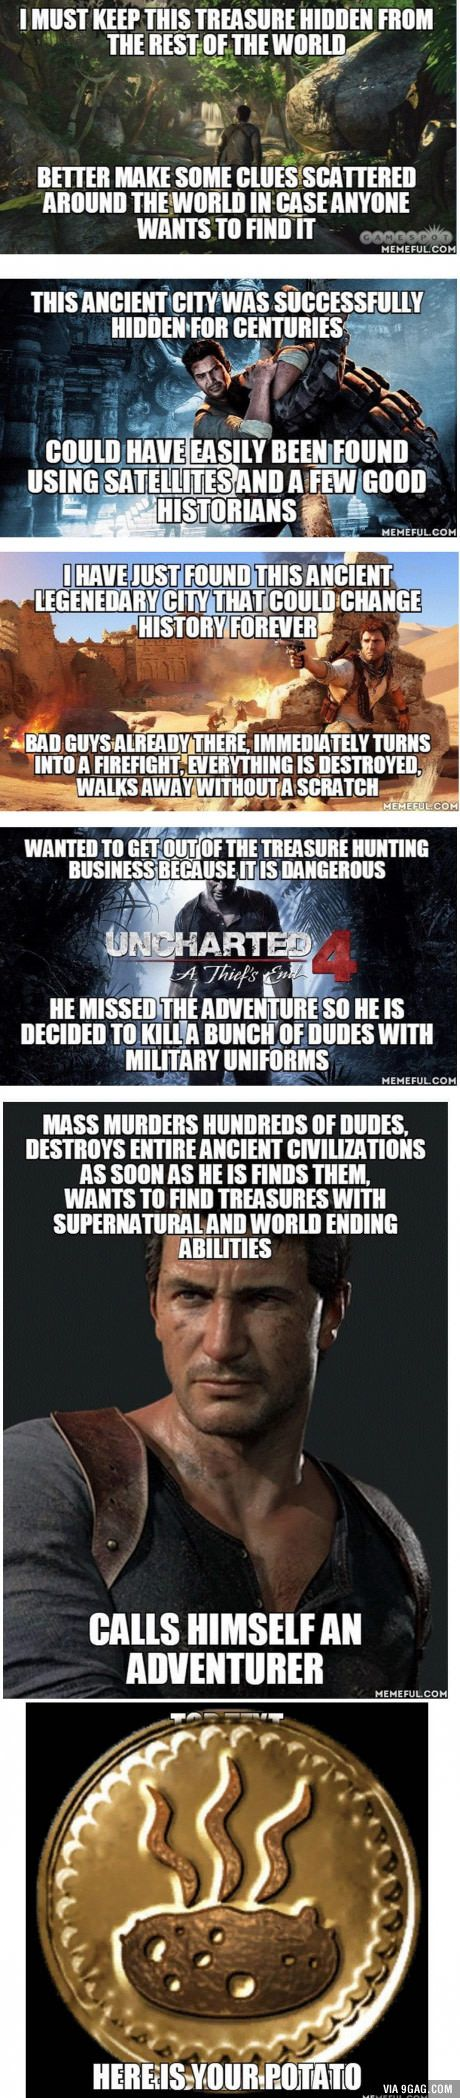 Uncharted series logic (Still in love with the series)